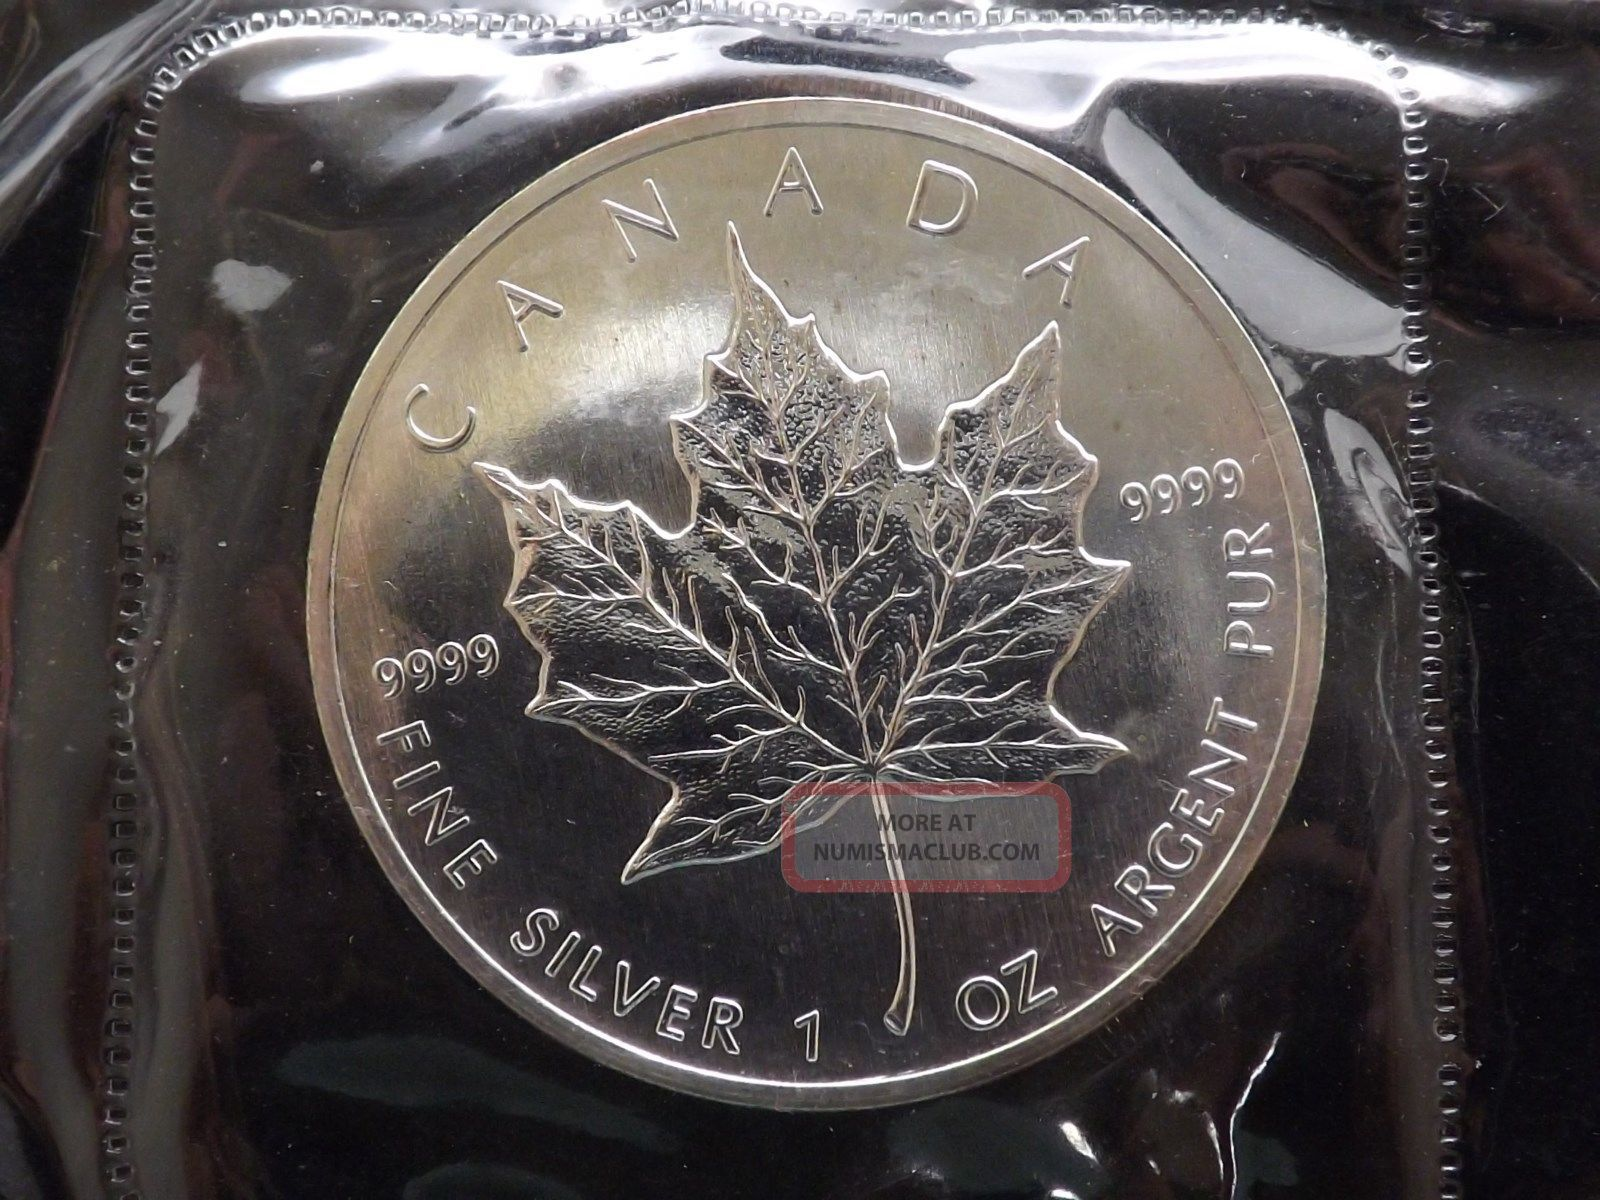 1988 Canadian Silver Maple Leaf Proof Like Rcm 9999